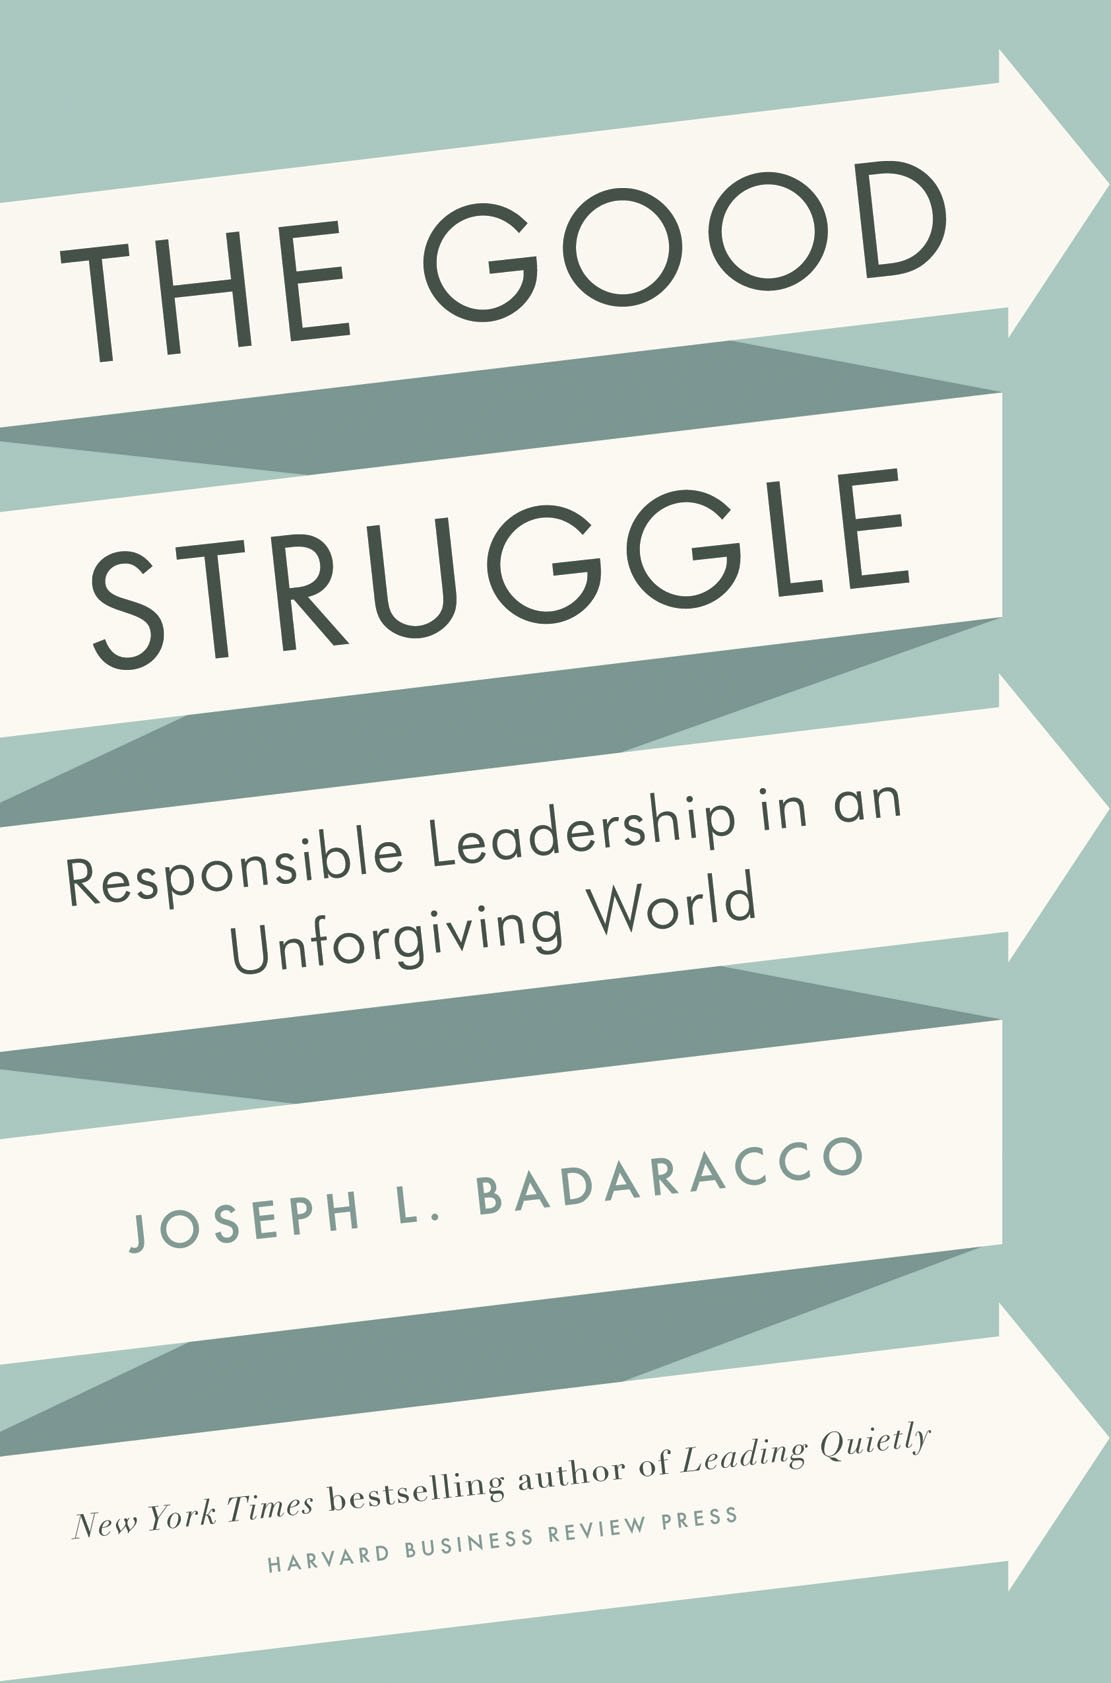 The Good Struggle: Responsible Leadership in an Unforgiving World pdf